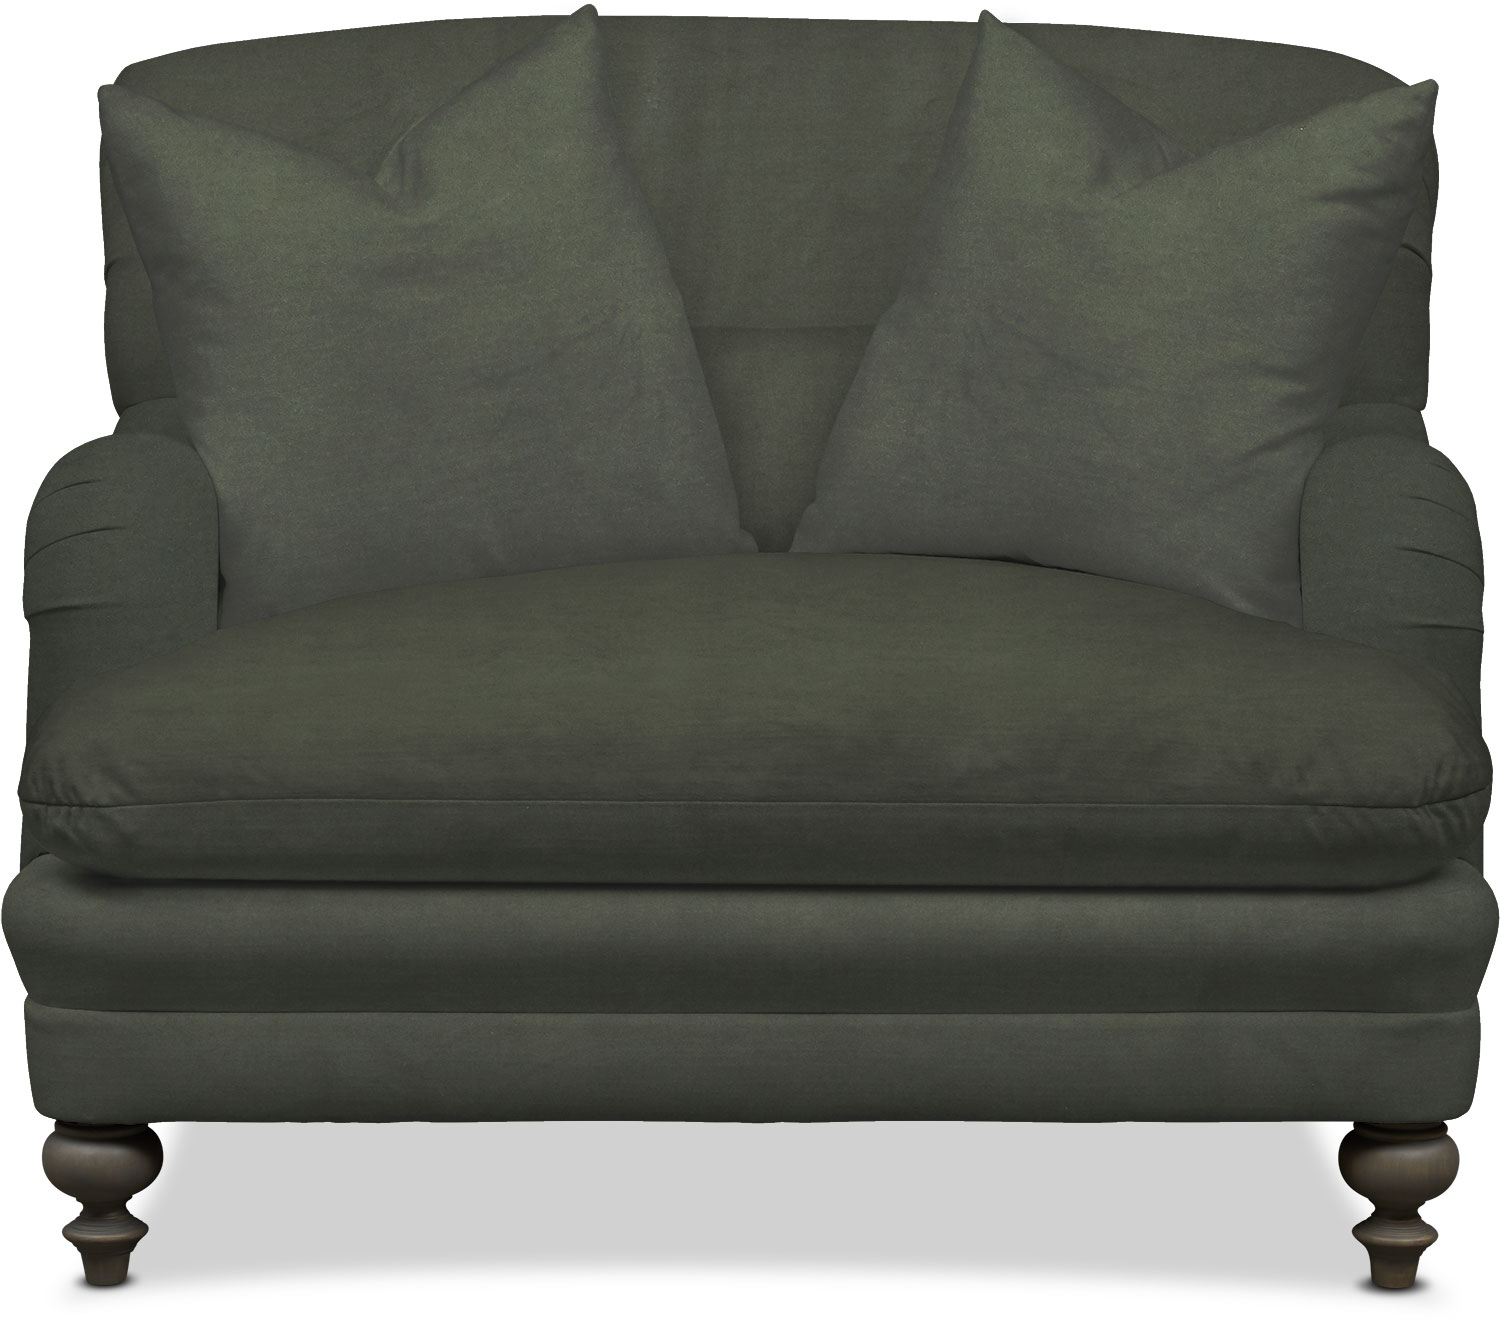 Overstuffed Leather Chair And Ottoman